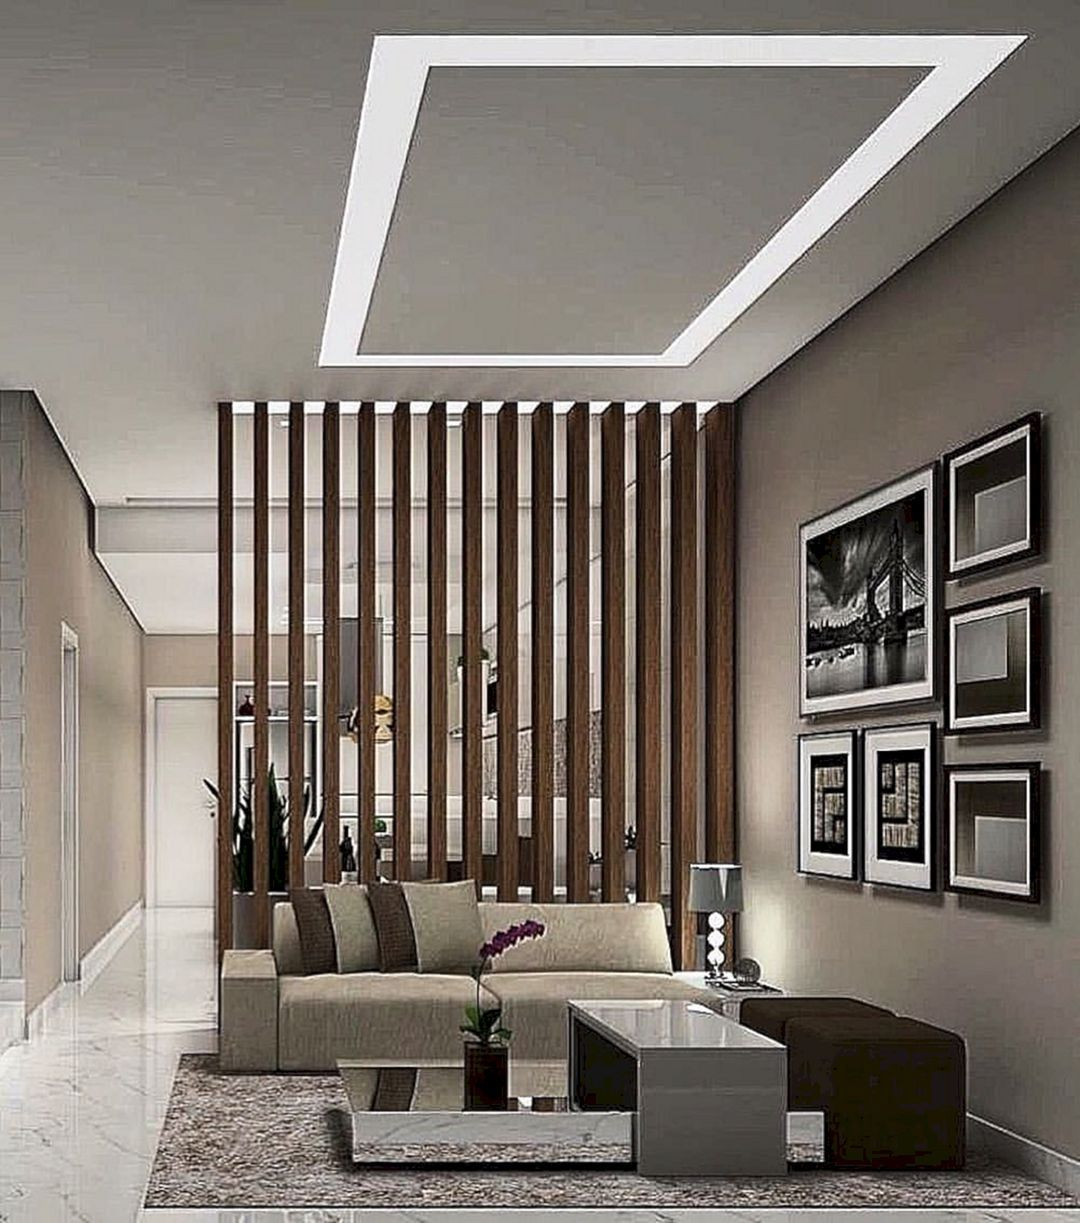 14 Wonderful Living Room Design With